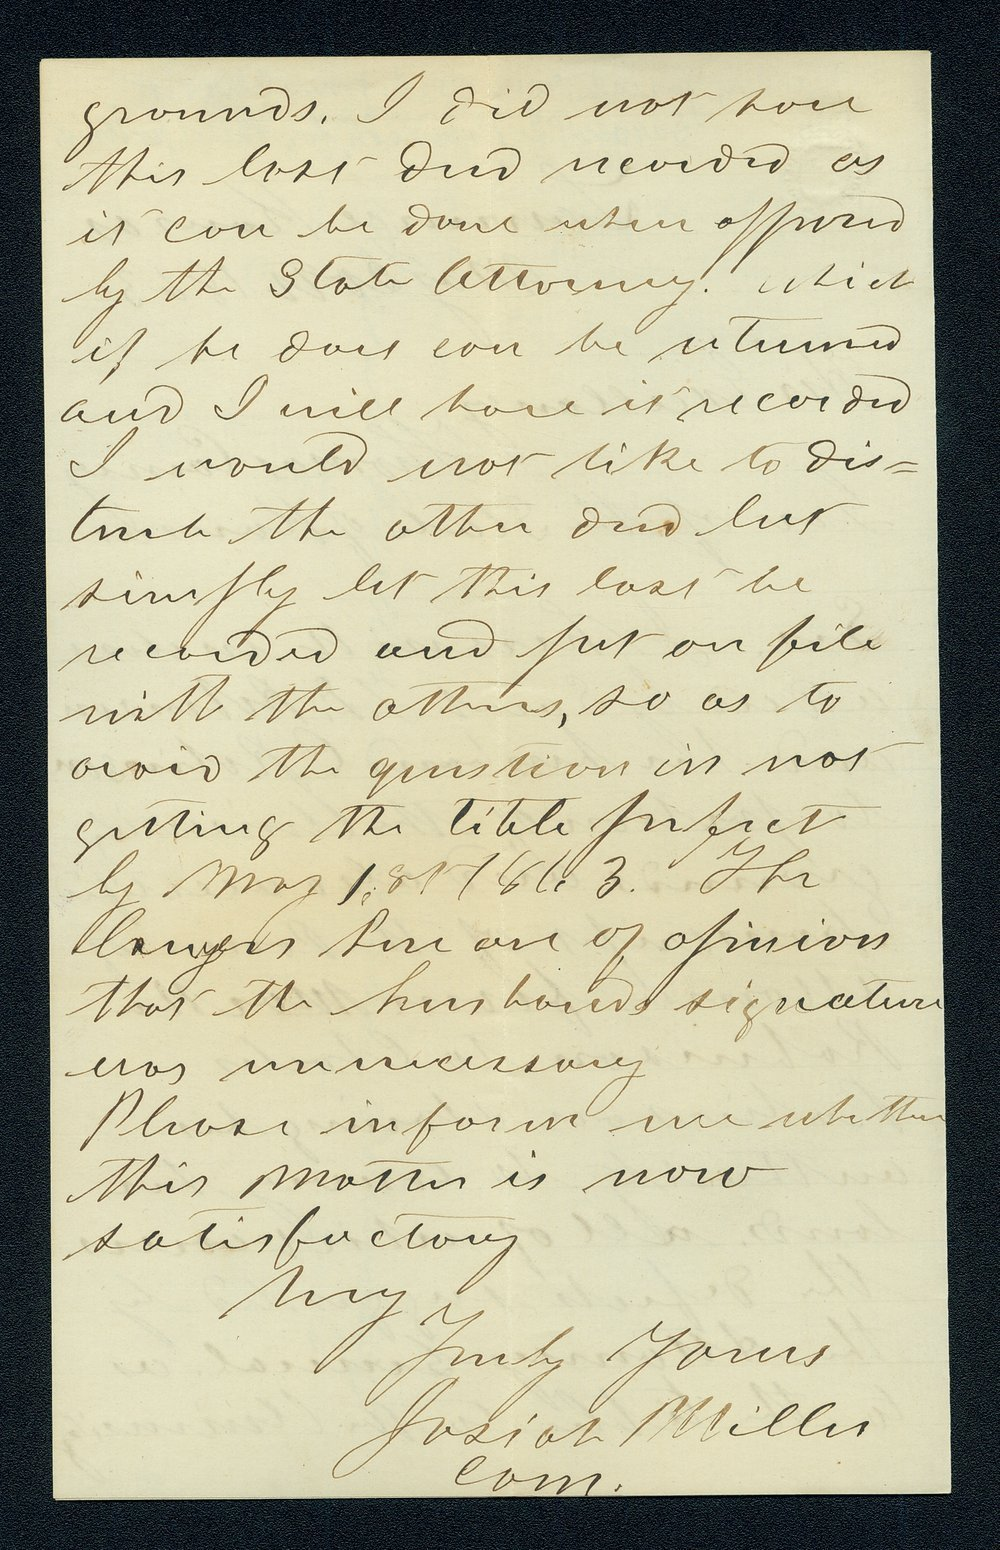 Governor Thomas Carney college and university lands, 1863, correspondence - 8